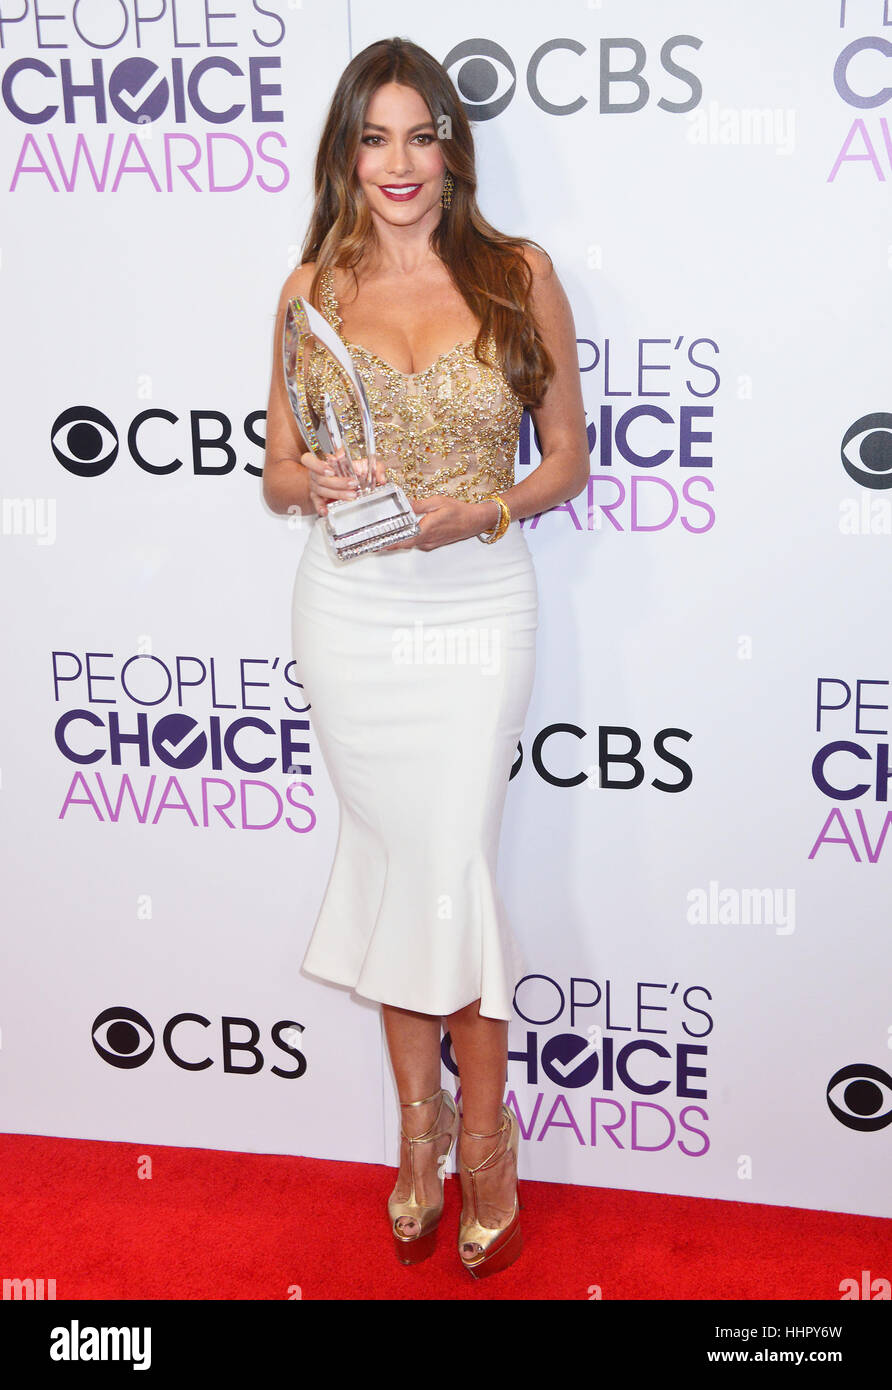 Sofia Vergara 213 arrivando al People's Choice Awards 2017 presso il Microsoft Theatre di Los Angeles. Il 18 Immagini Stock